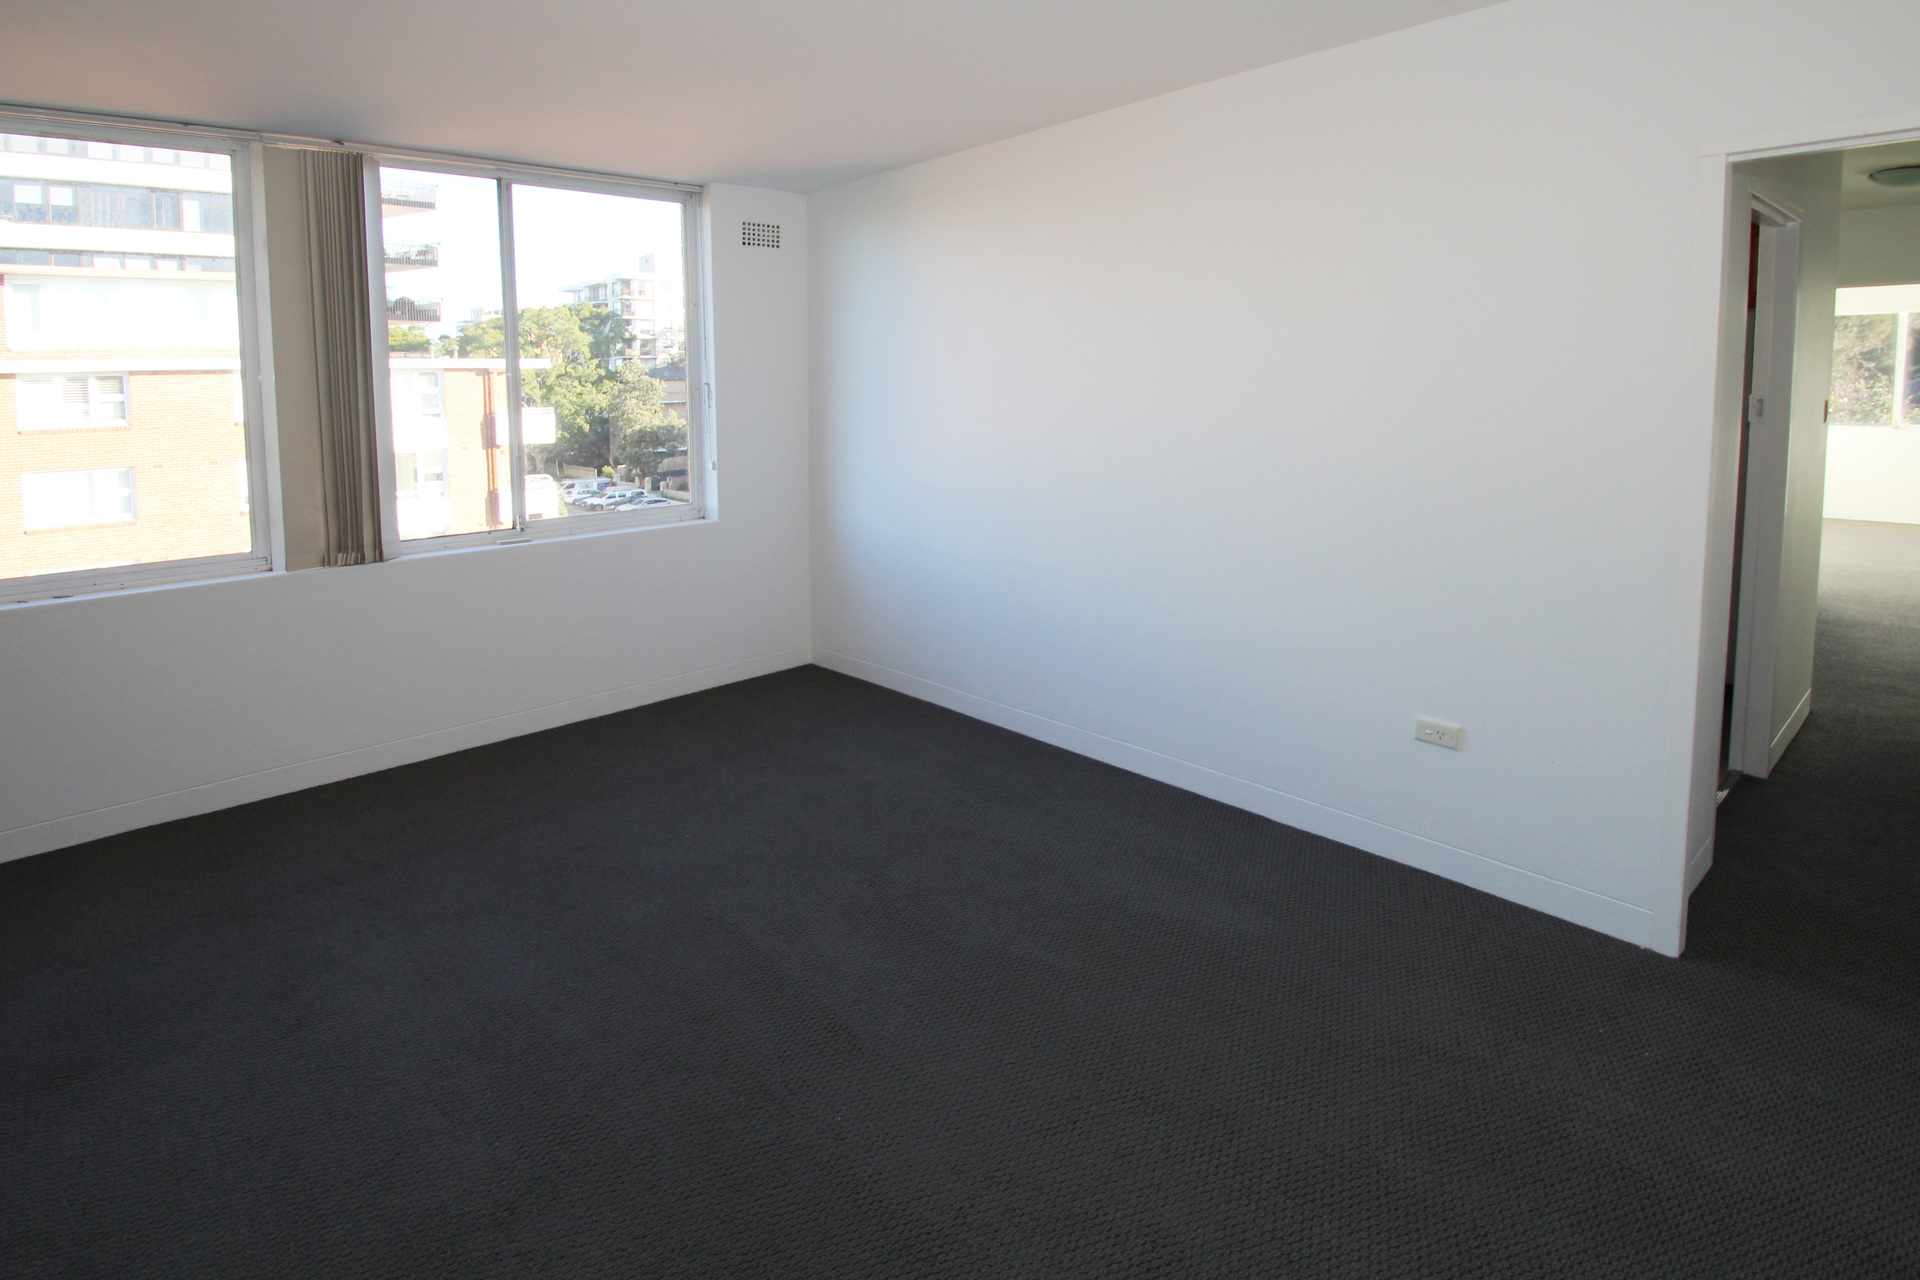 BRIGHT TWO BEDROOM APARTMENT IN THE HEART OF BONDI!